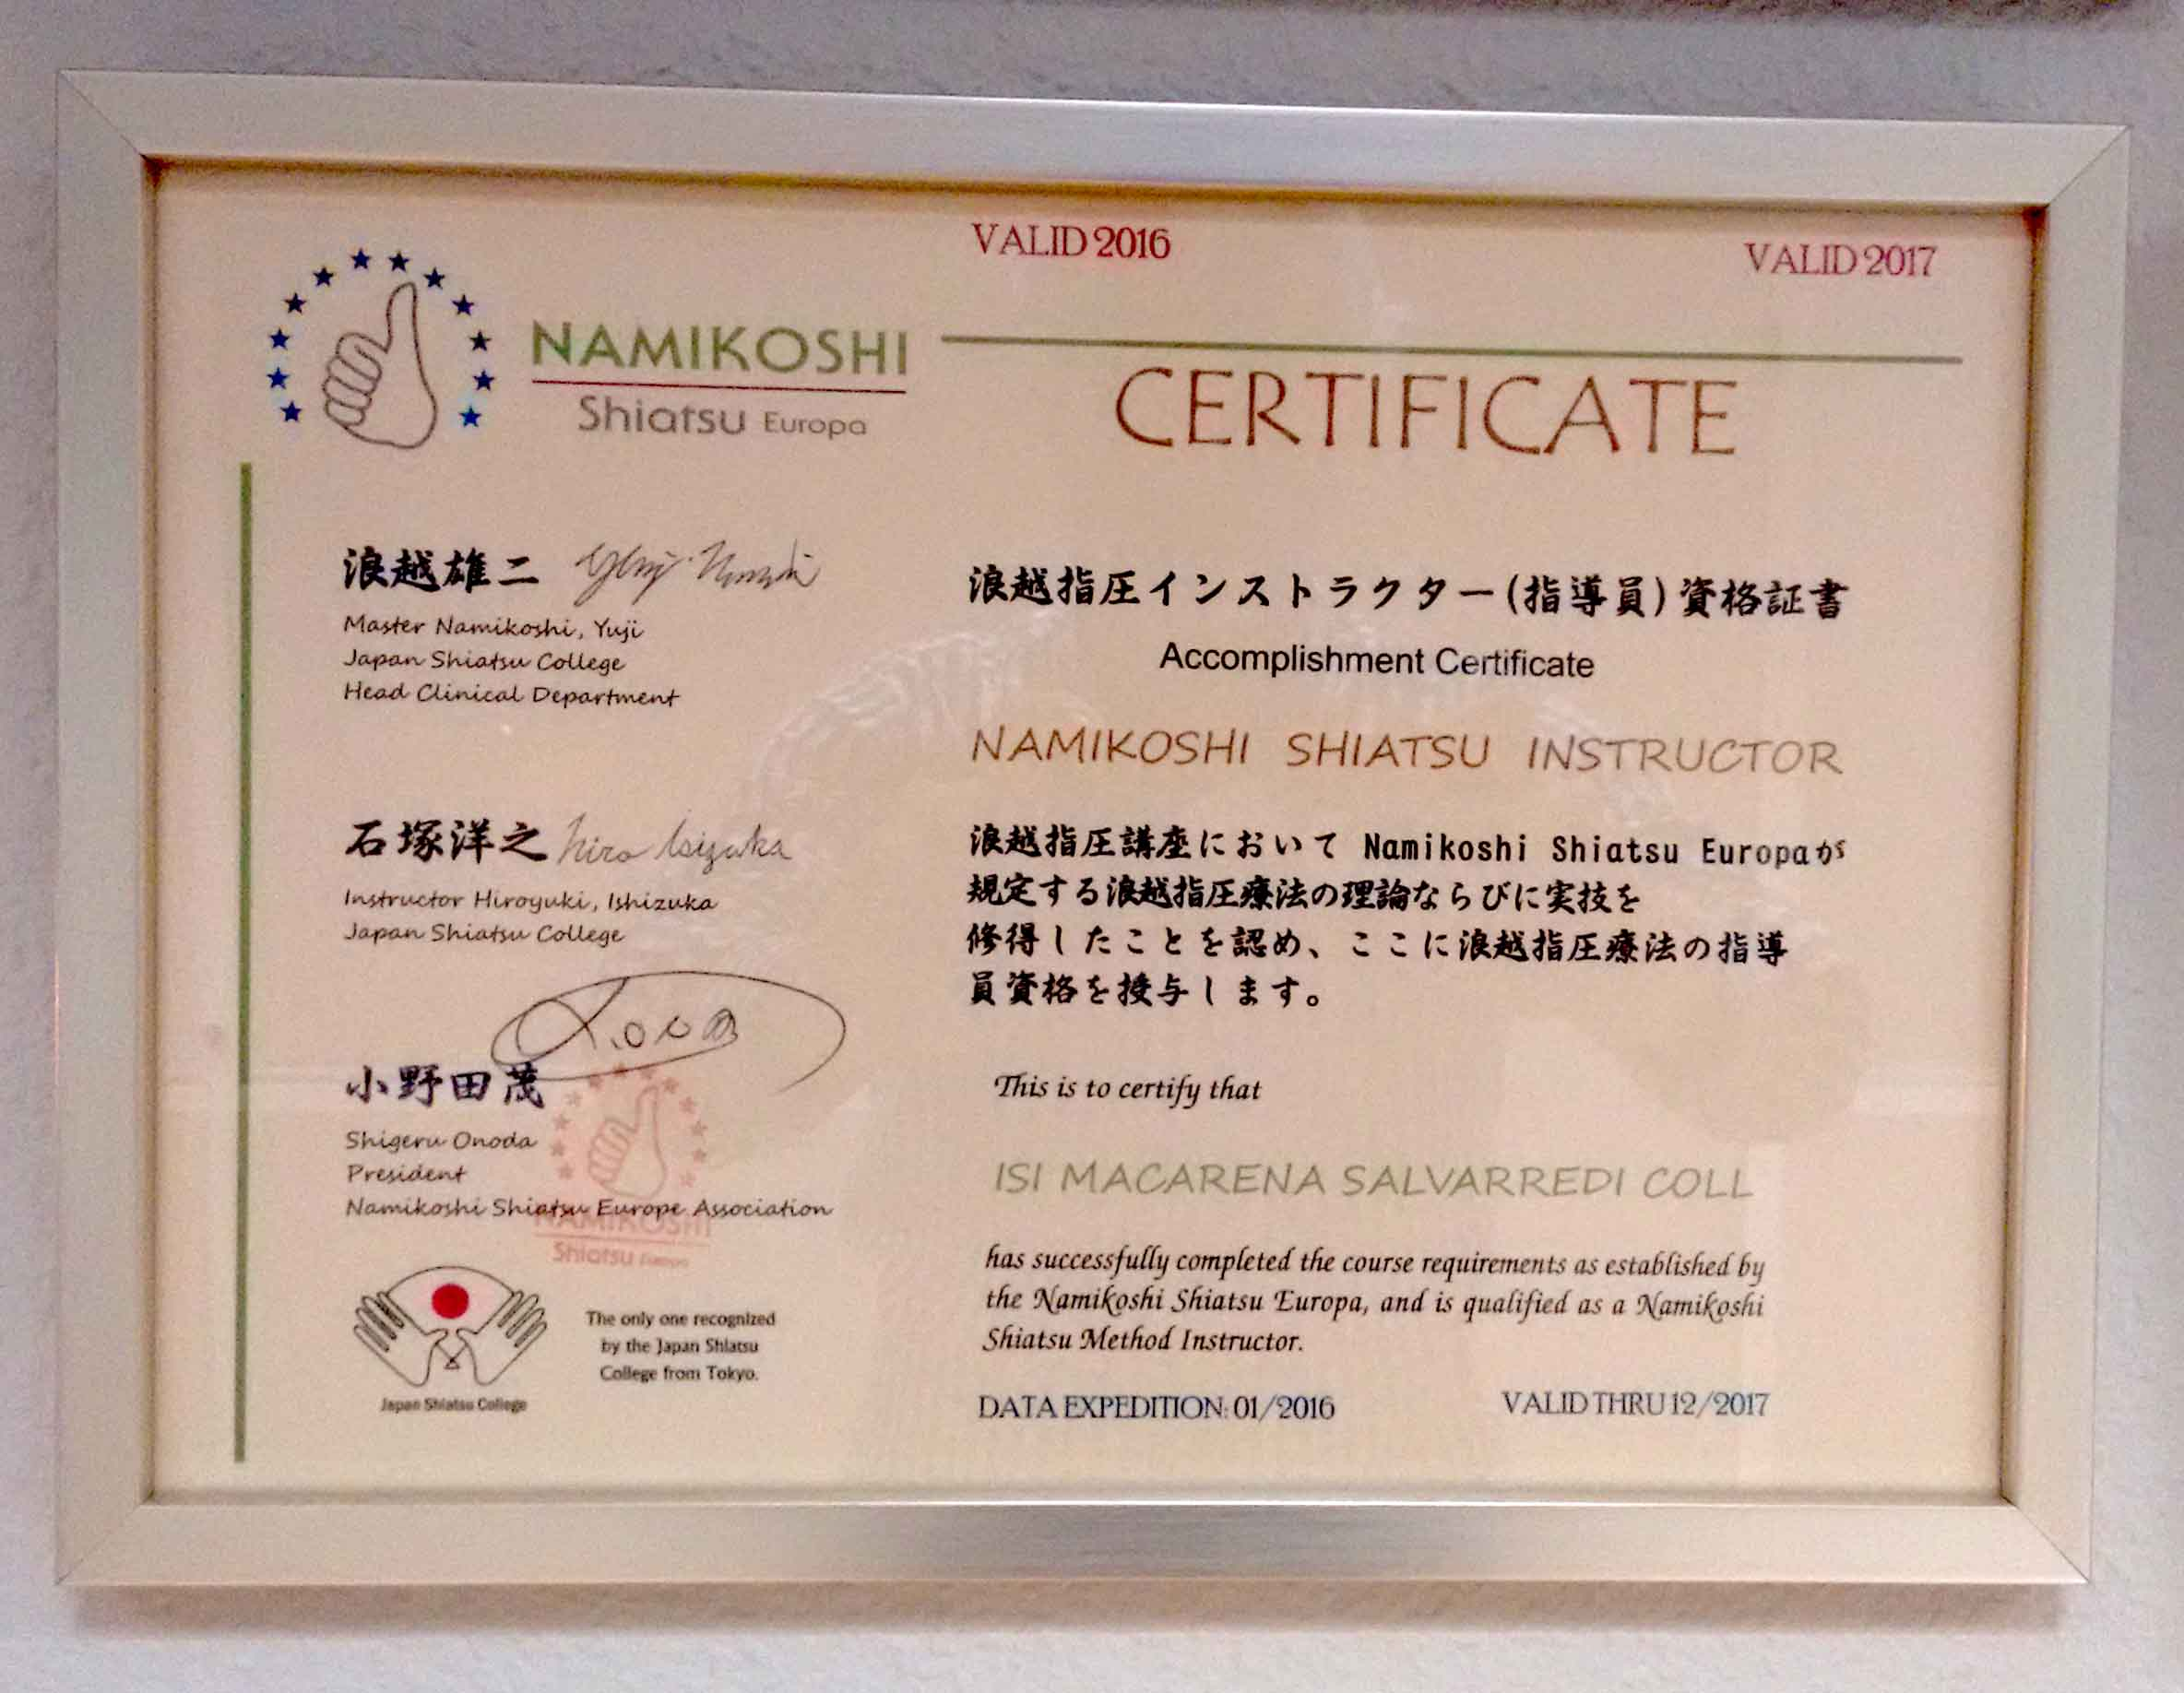 Instructor Namikoshi Shiatsu